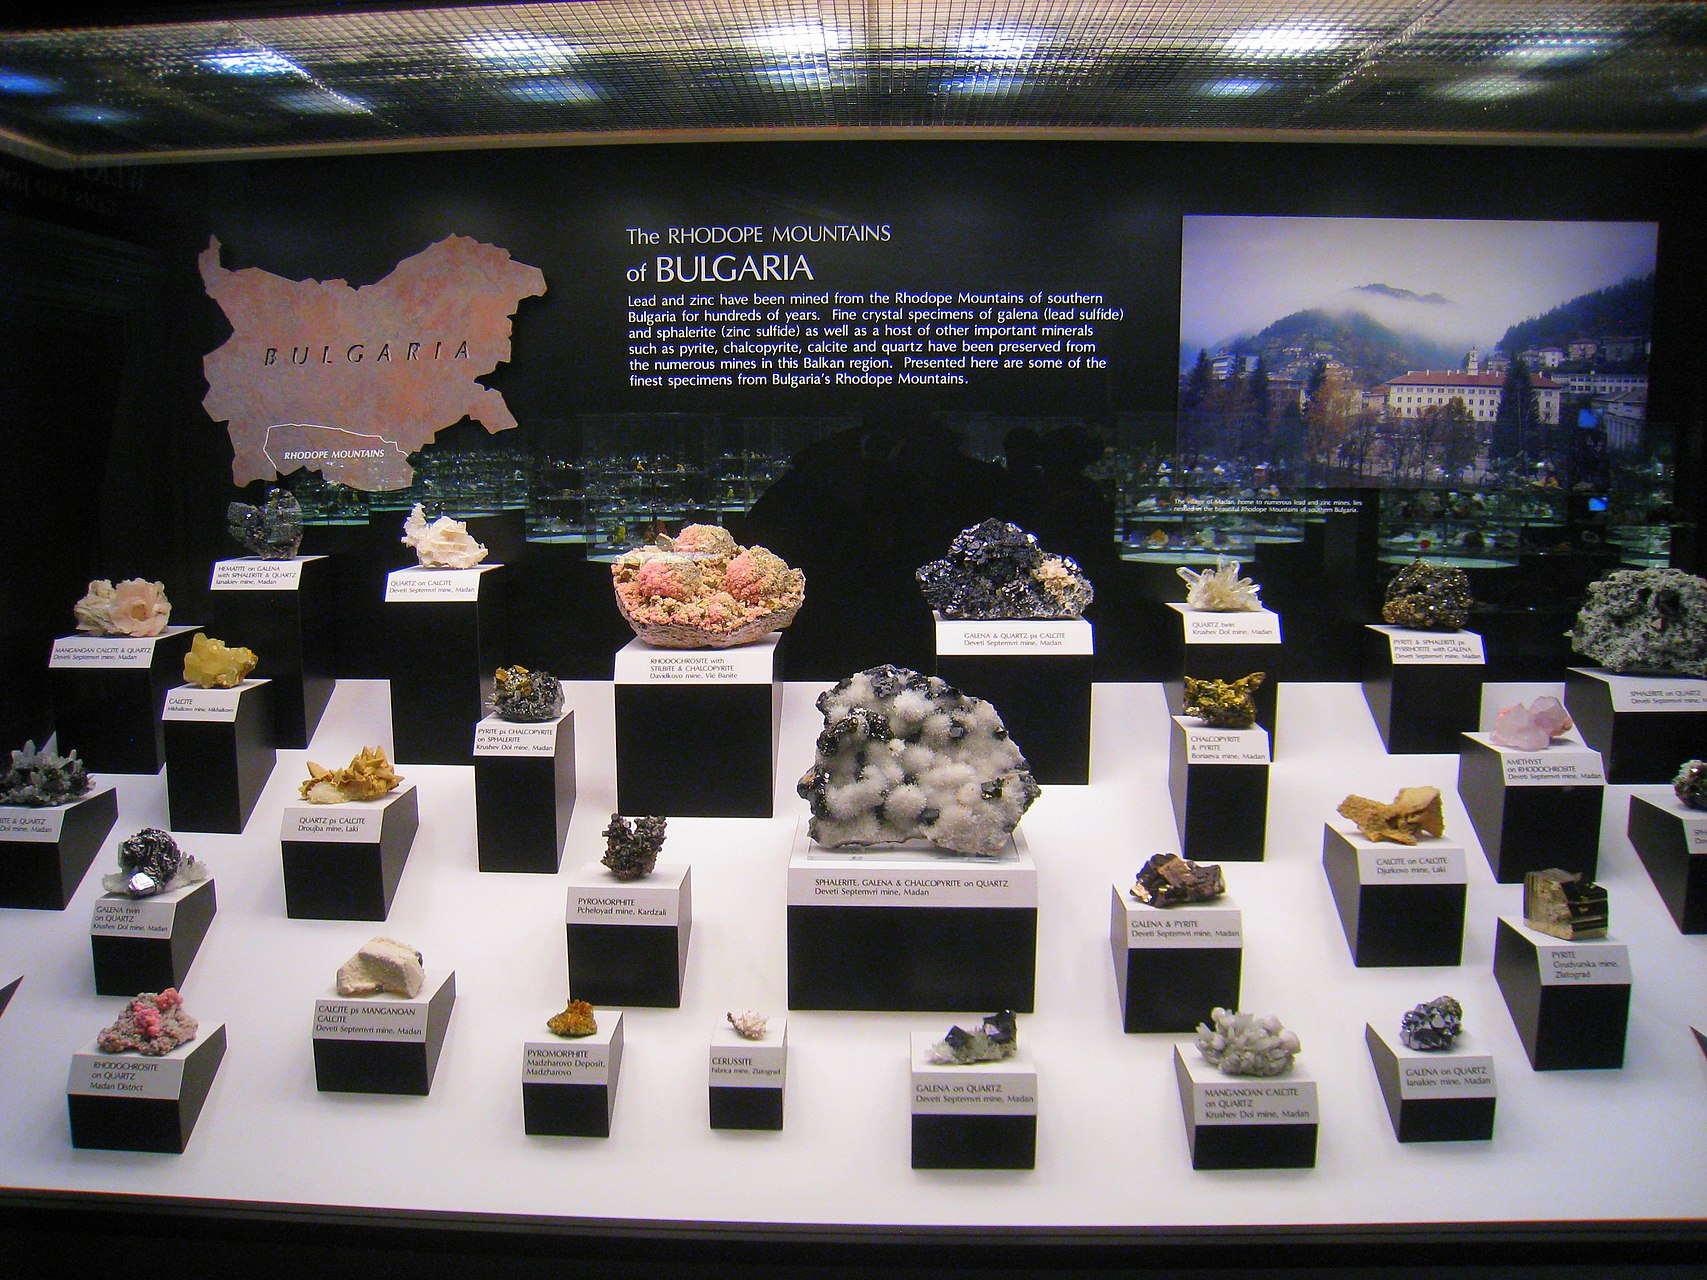 Hillman_Hall_of_Minerals_and_Gems_-_IMG_0643.jpg